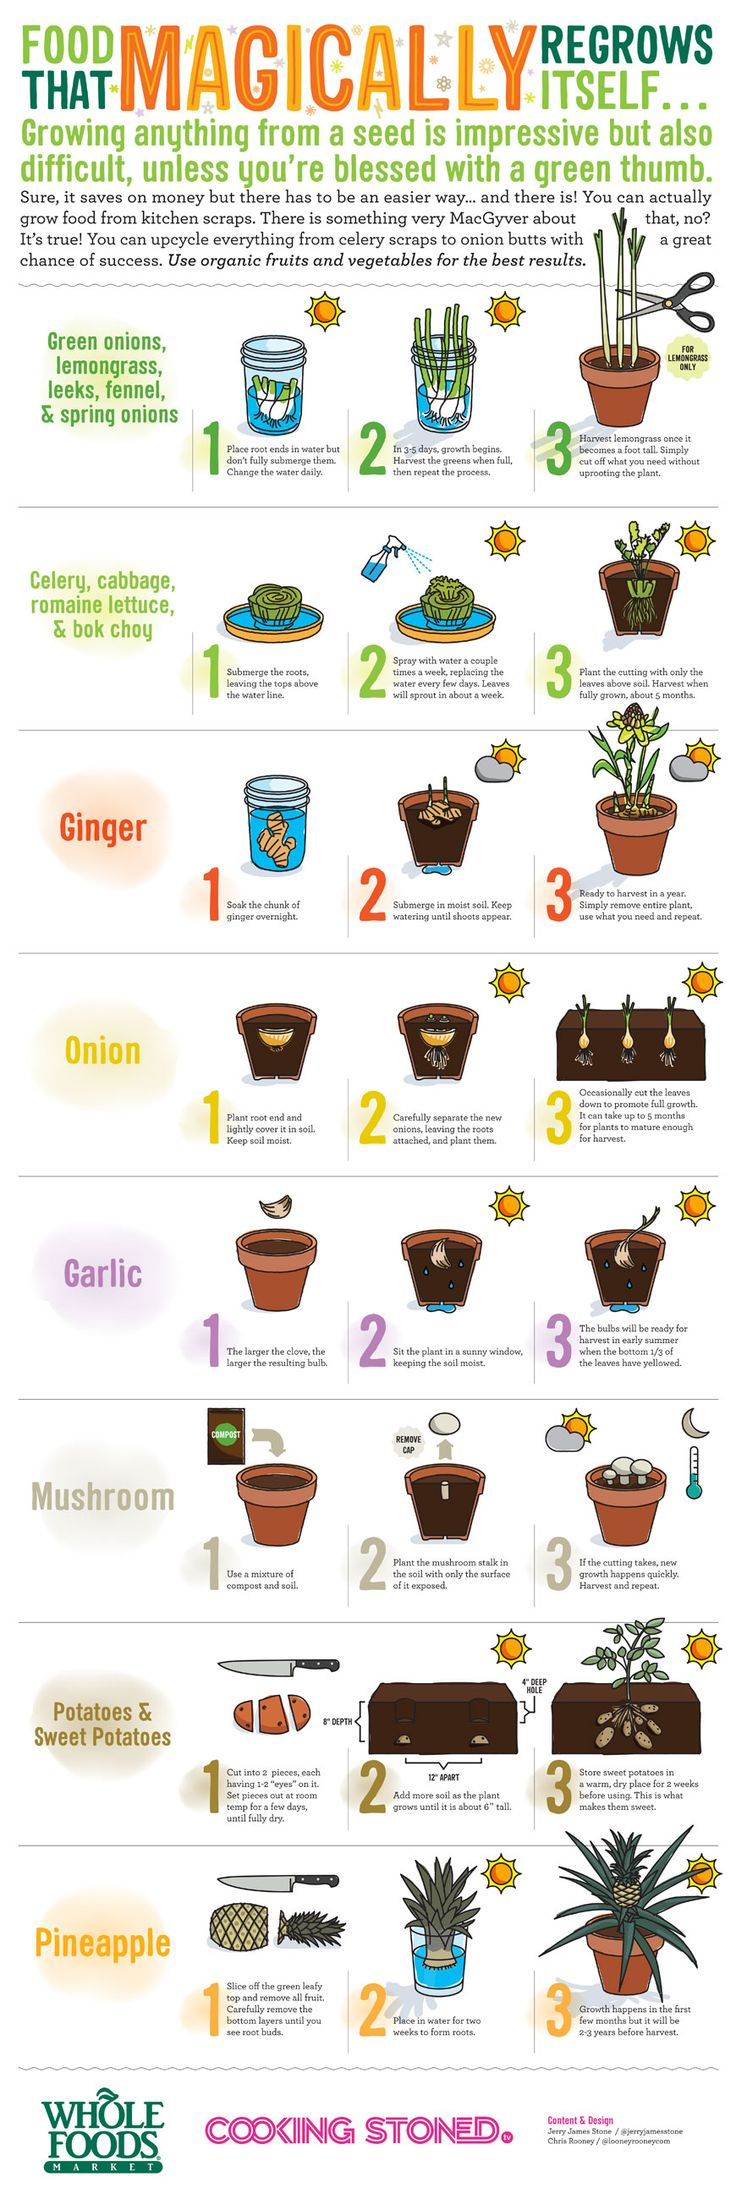 Foods that regrow themselves